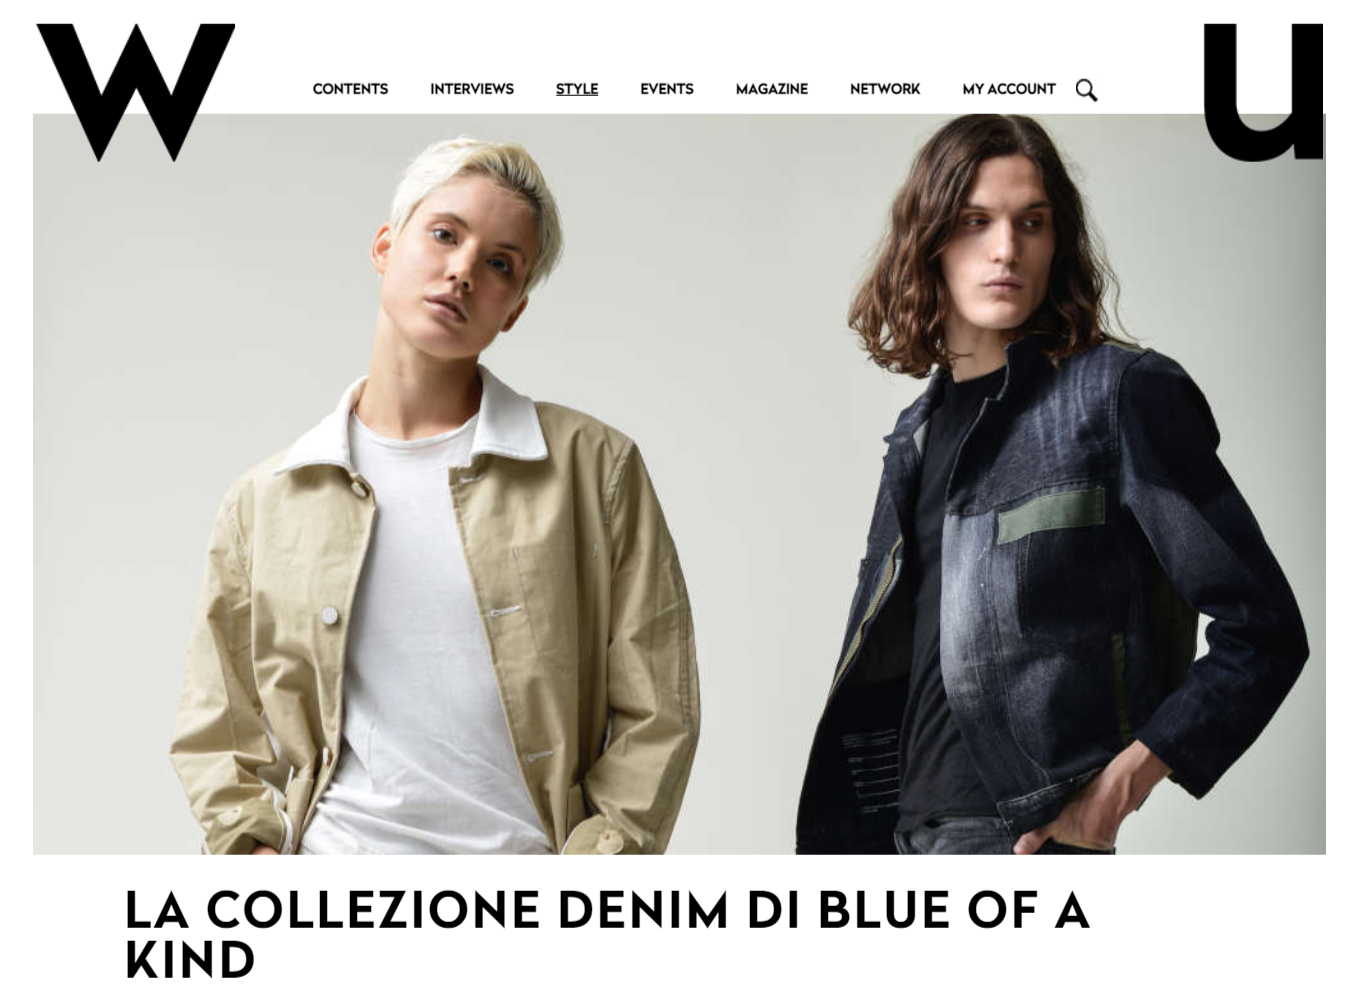 WU magazine - La collezione denim di Blue of a Kind